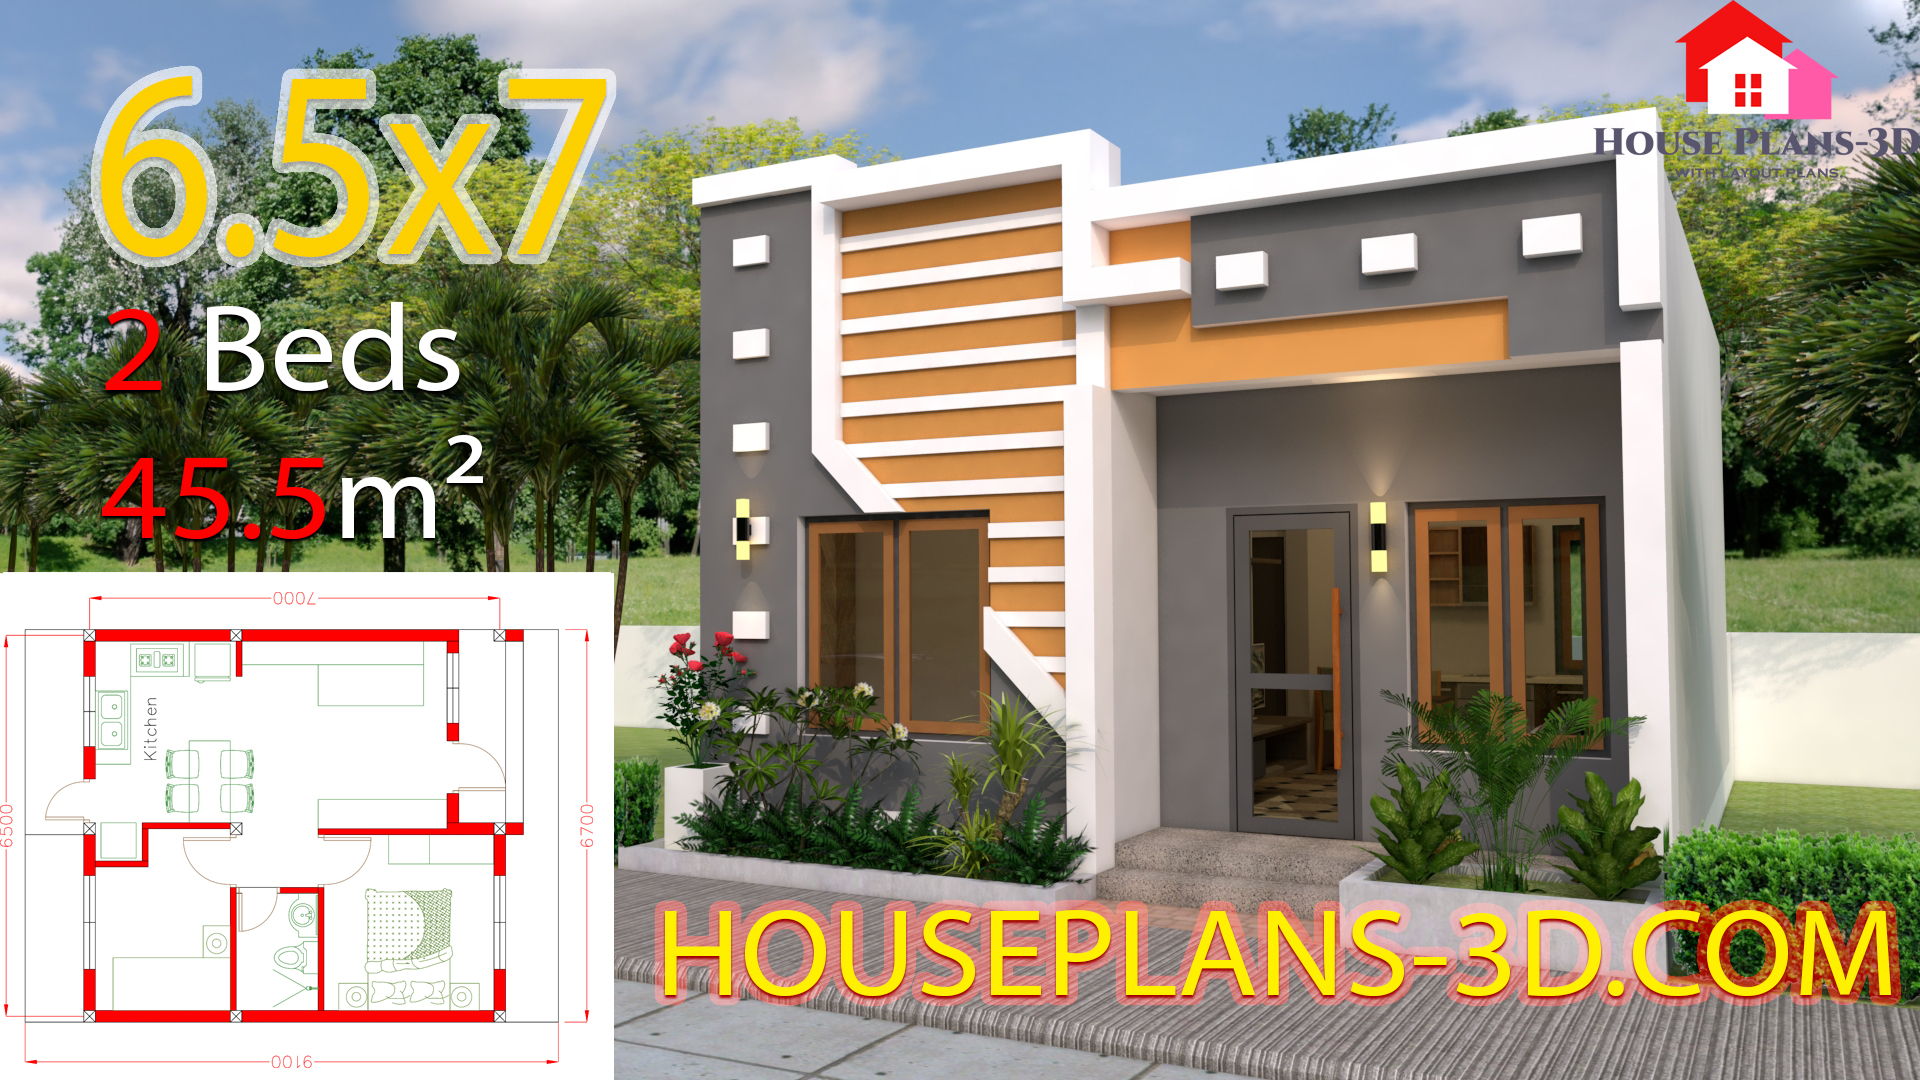 Small House Design 6.5x7 with 2 Bedrooms full plans - House Plans 3D